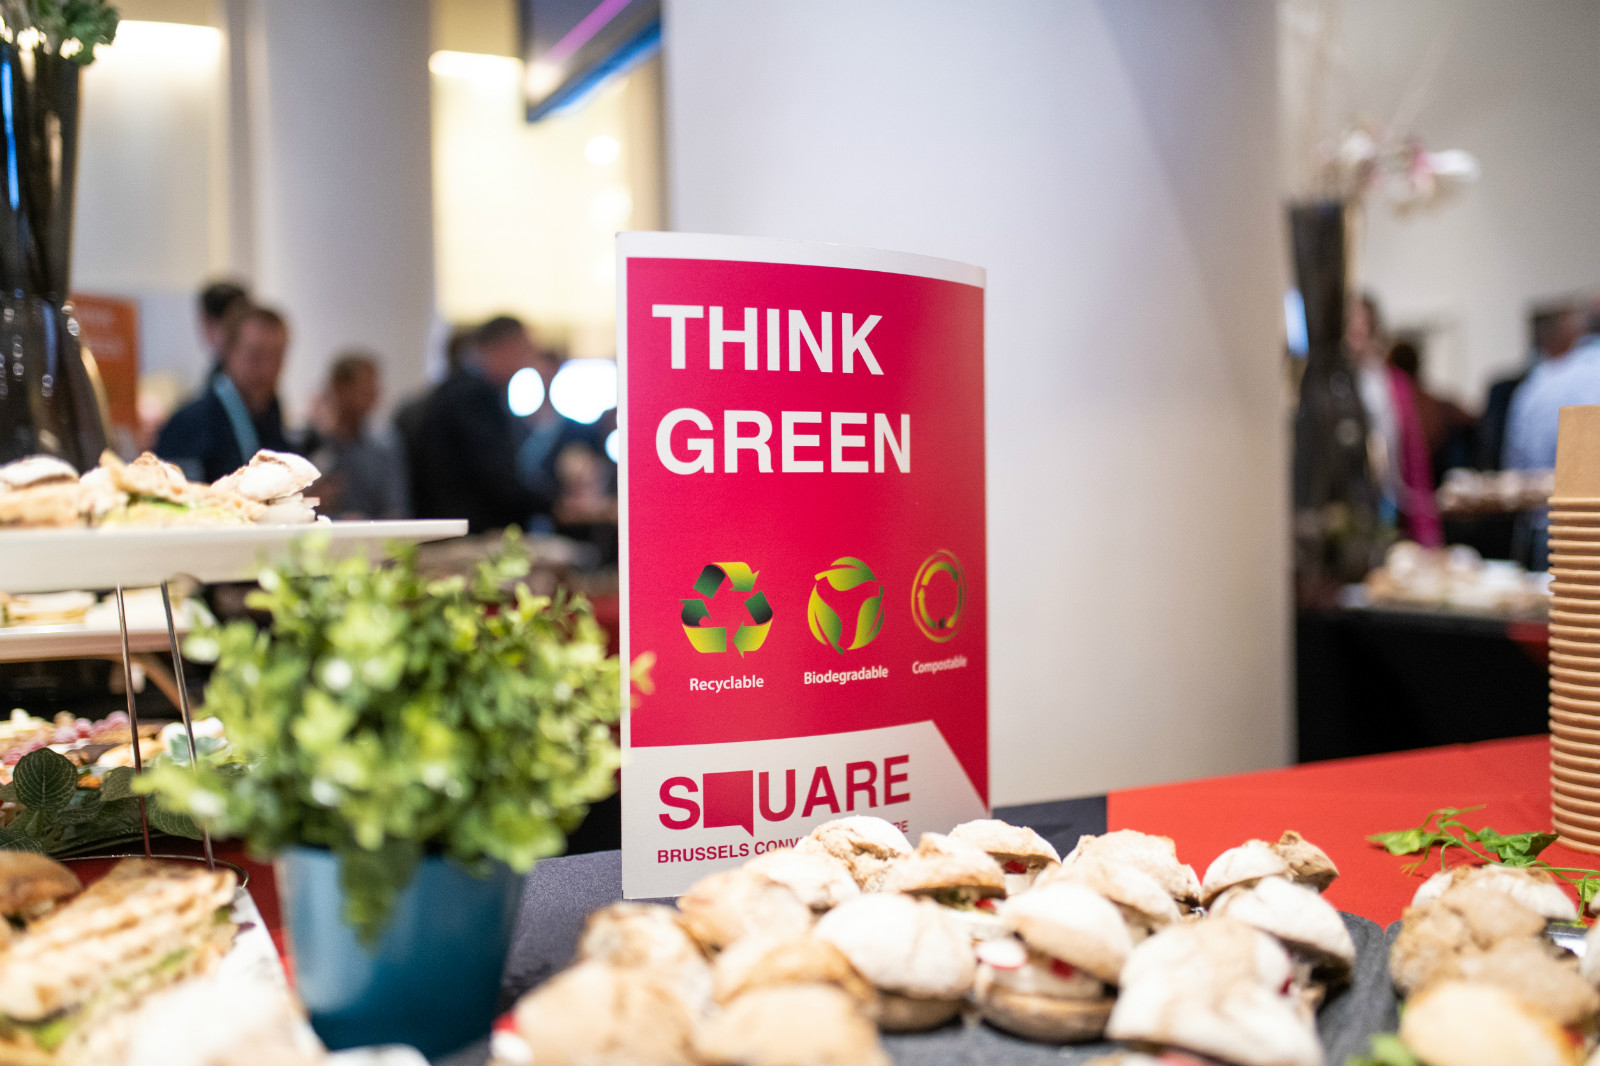 SQUARE Think Green actions